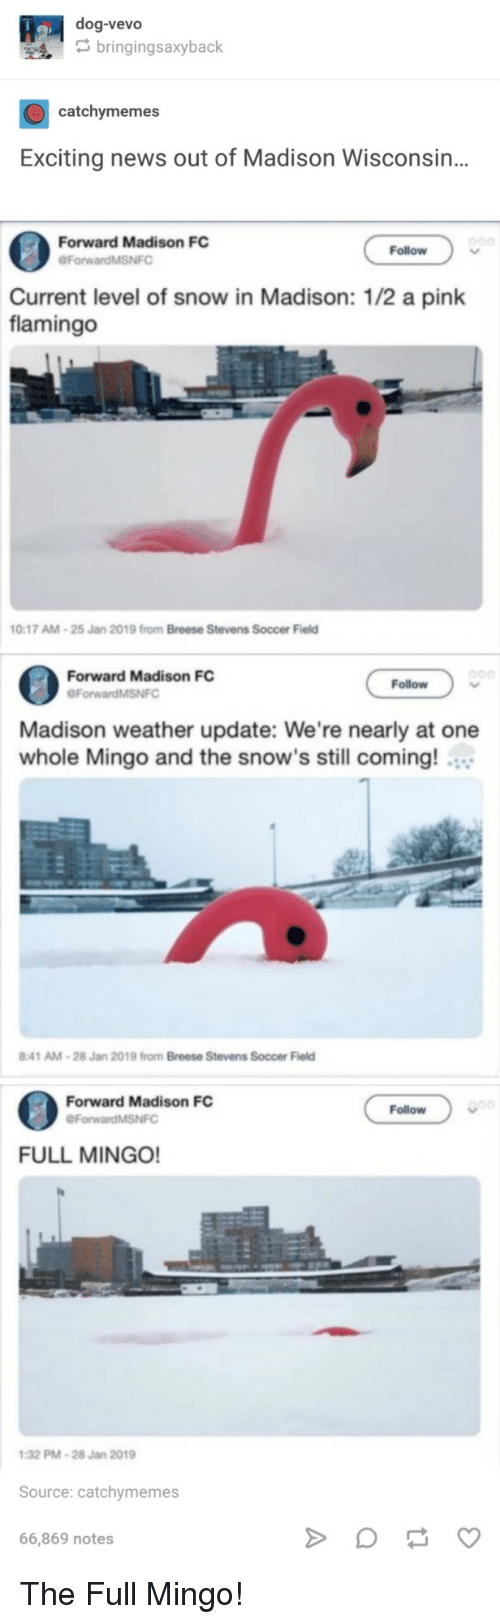 News, Soccer, and Pink: dog-vevo  bringingsaxyback  catchymemes  Exciting news out of Madison Wisconsin..  Forward Madison FC  ForwardMSNFO  Follow  Current level of snow in Madison: 1/2 a pink  flamingo  0:17 AM-25 Jan  2019 from Breese Stevens  Soccer Field  Forward Madison FC  Follow  Madison weather update: We're nearly at one  whole Mingo and the snow's still coming!  :41 AM-28 Jan 2019 from Breese Stevens Soccer Field  Forward Madison FC  Follow  ForwardMSNFC  FULL MINGO!  32 PM-28 Jan 2019  Source: catchymemes  66,869 notes The Full Mingo!